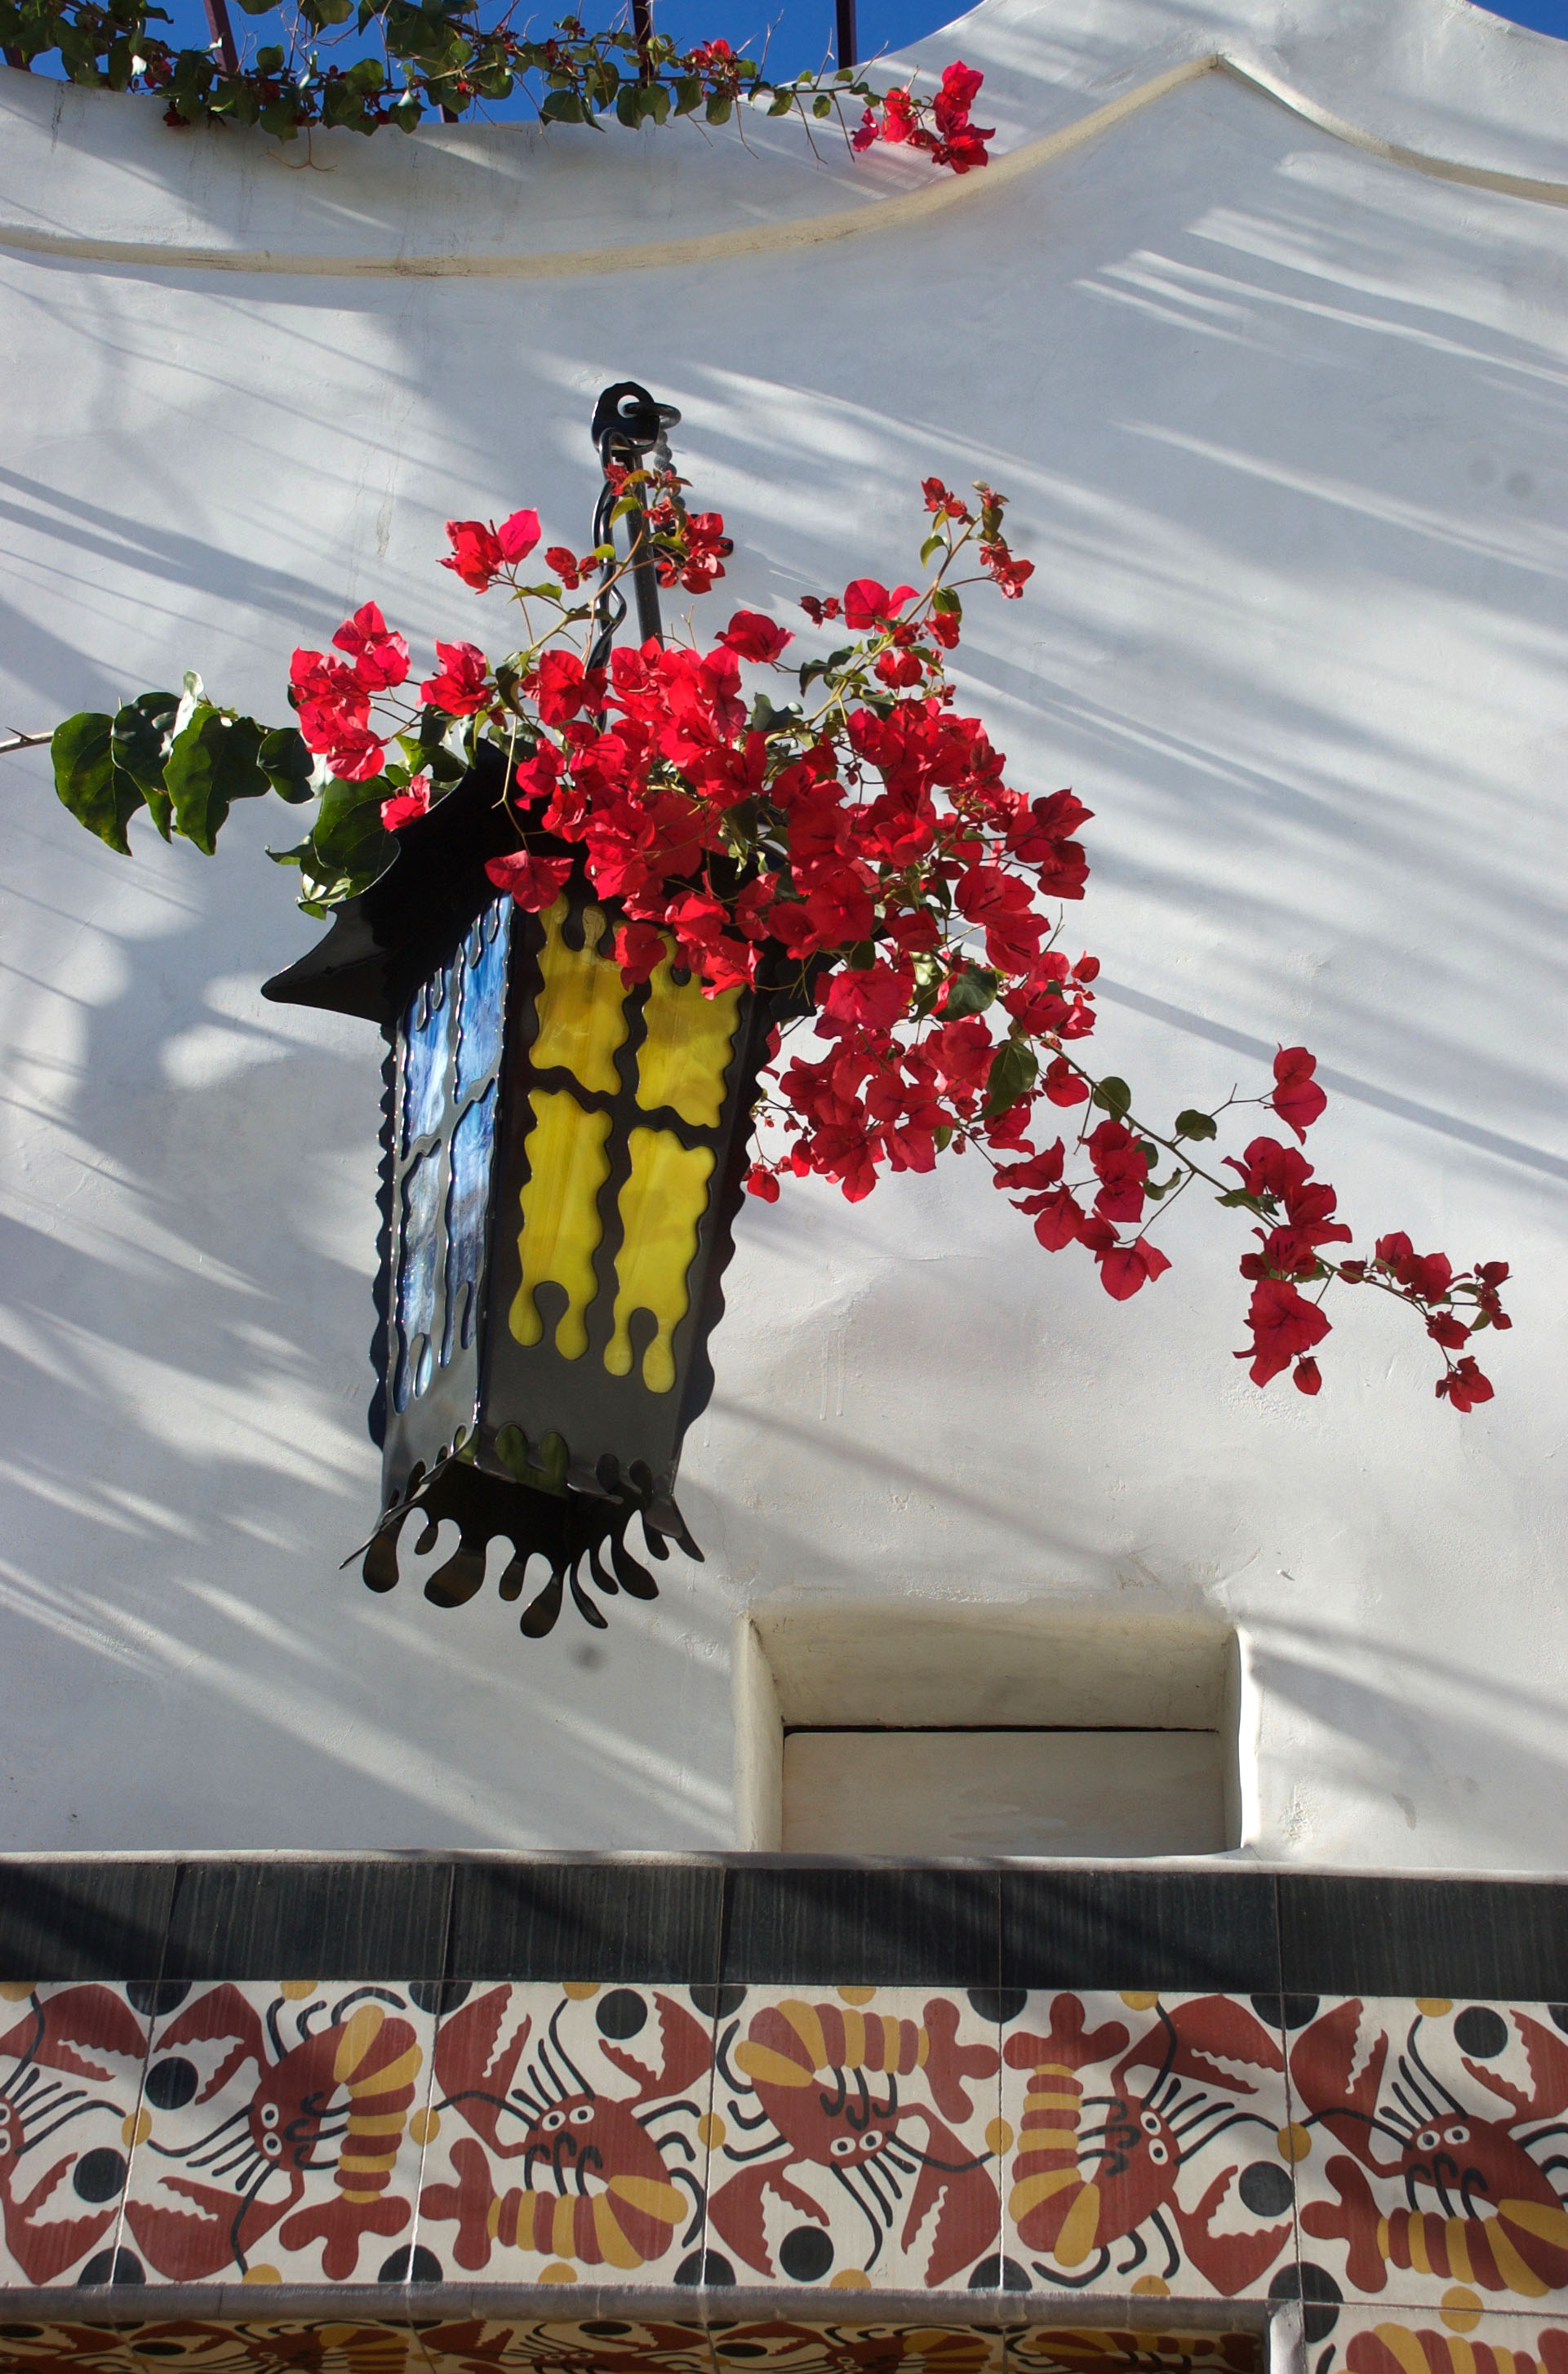 lamp & bougainvillea.jpg